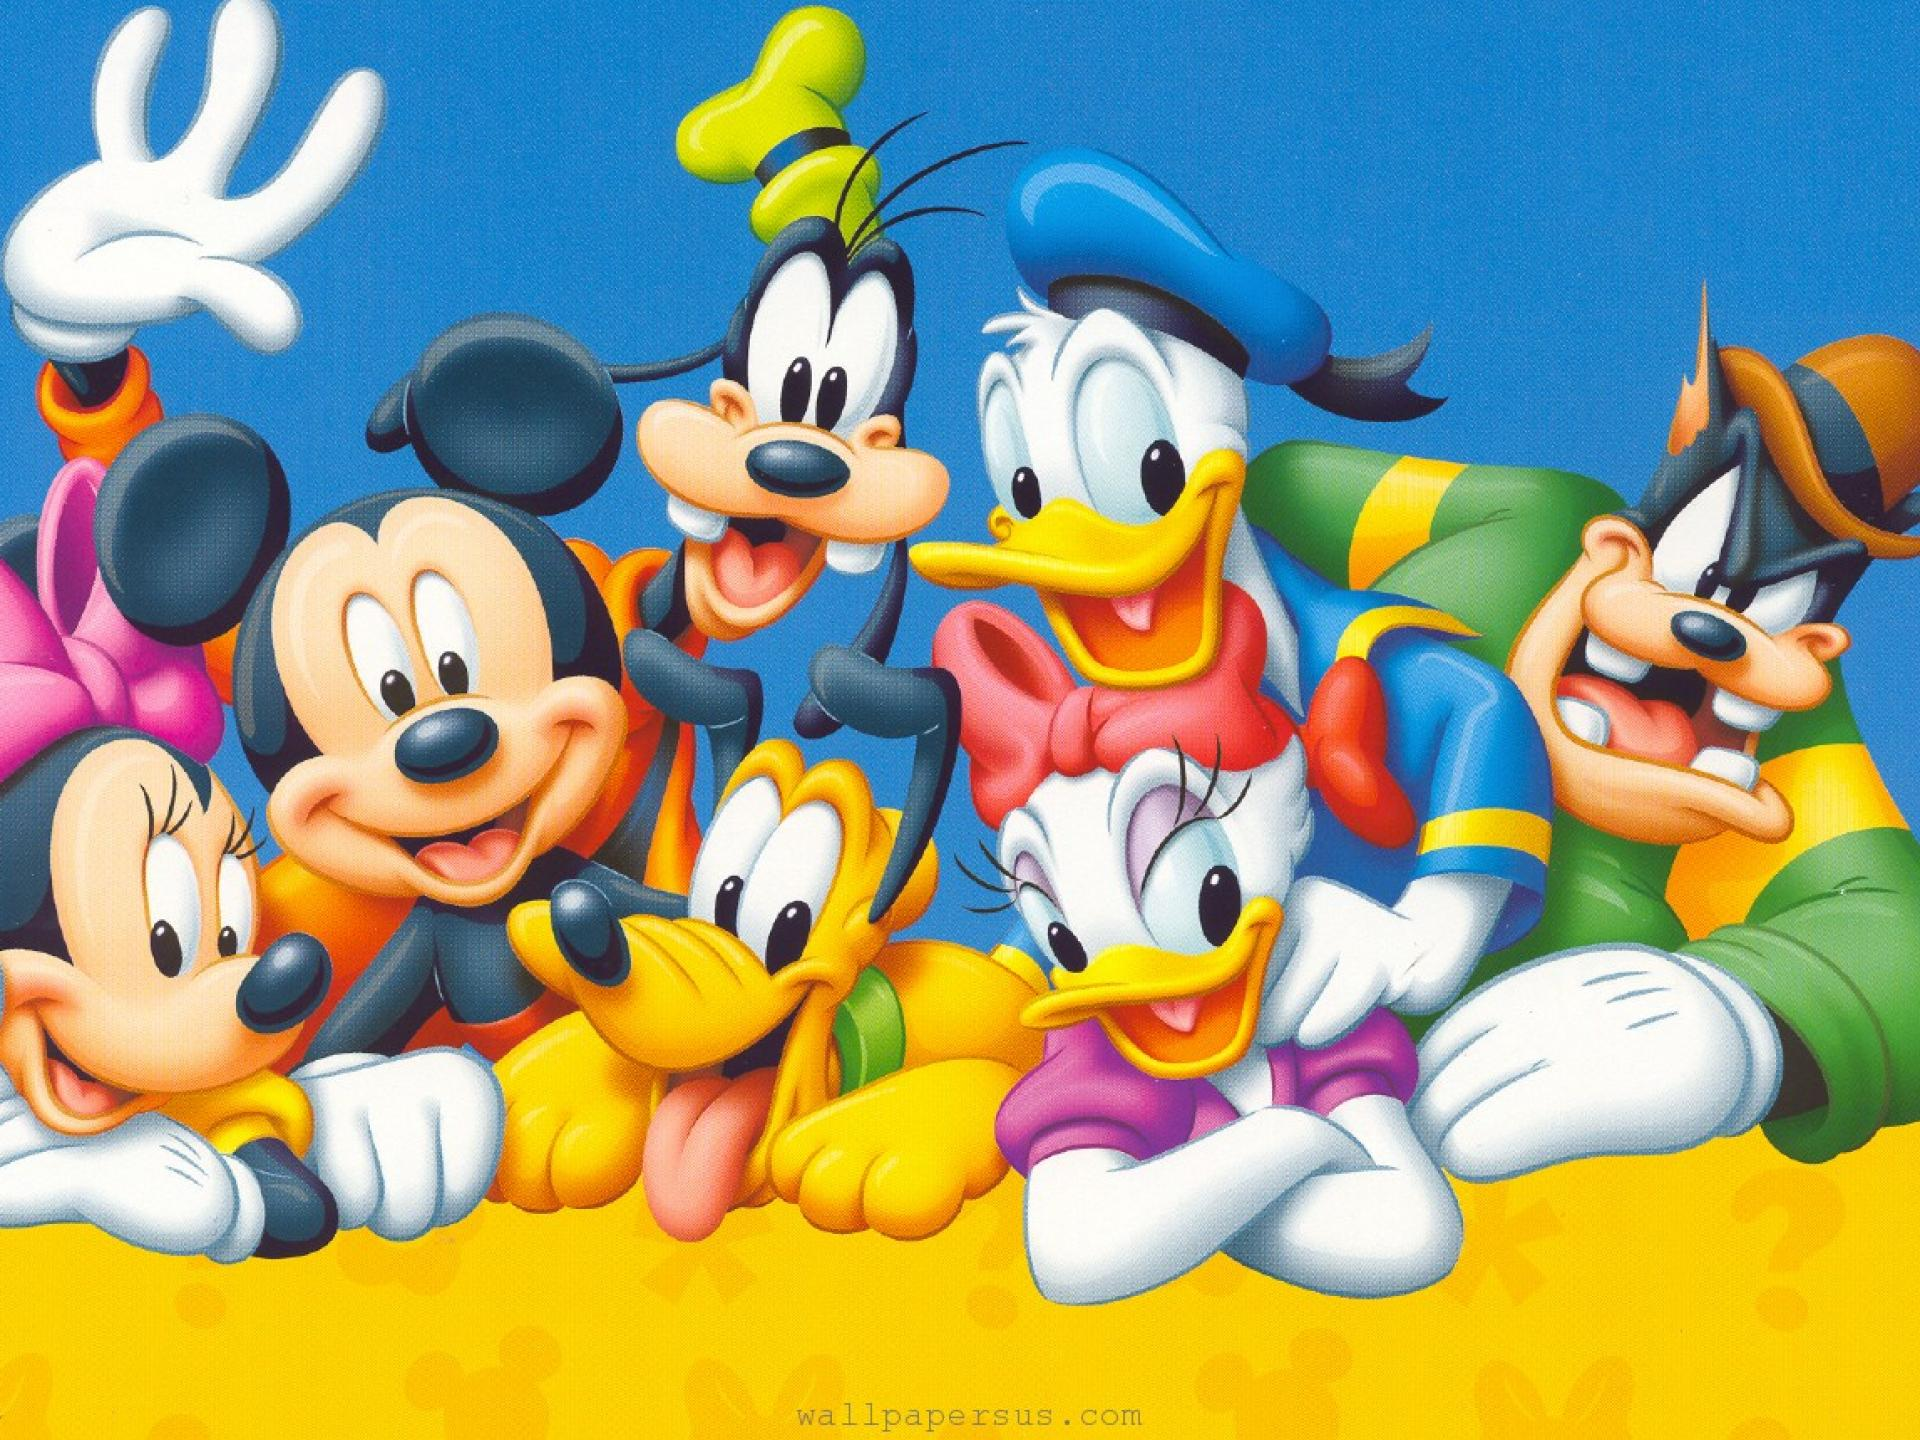 donald duck wallpaper 6 Cool Wallpapers